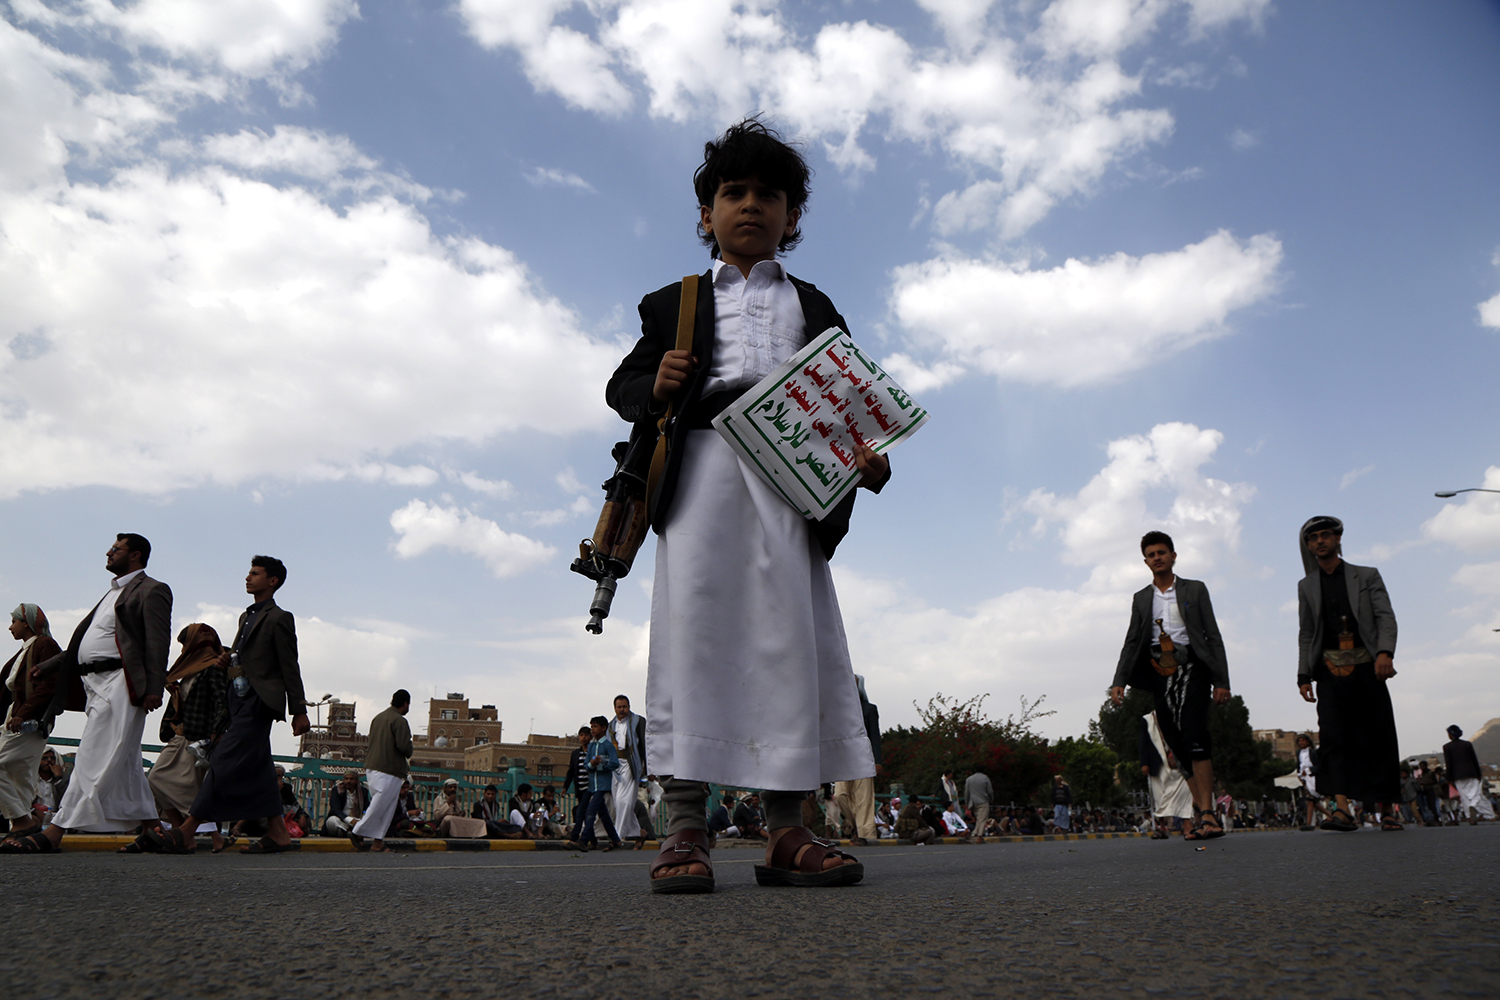 A Yemeni child carries a gun and holds a Houthi flag as he takes part in protest in Sana'a staged against the Saudi-led coalition for preventing the Houthi delegation from traveling to Geneva to attend the U.N.-sponsored peace talks on Sept. 7, 2018.